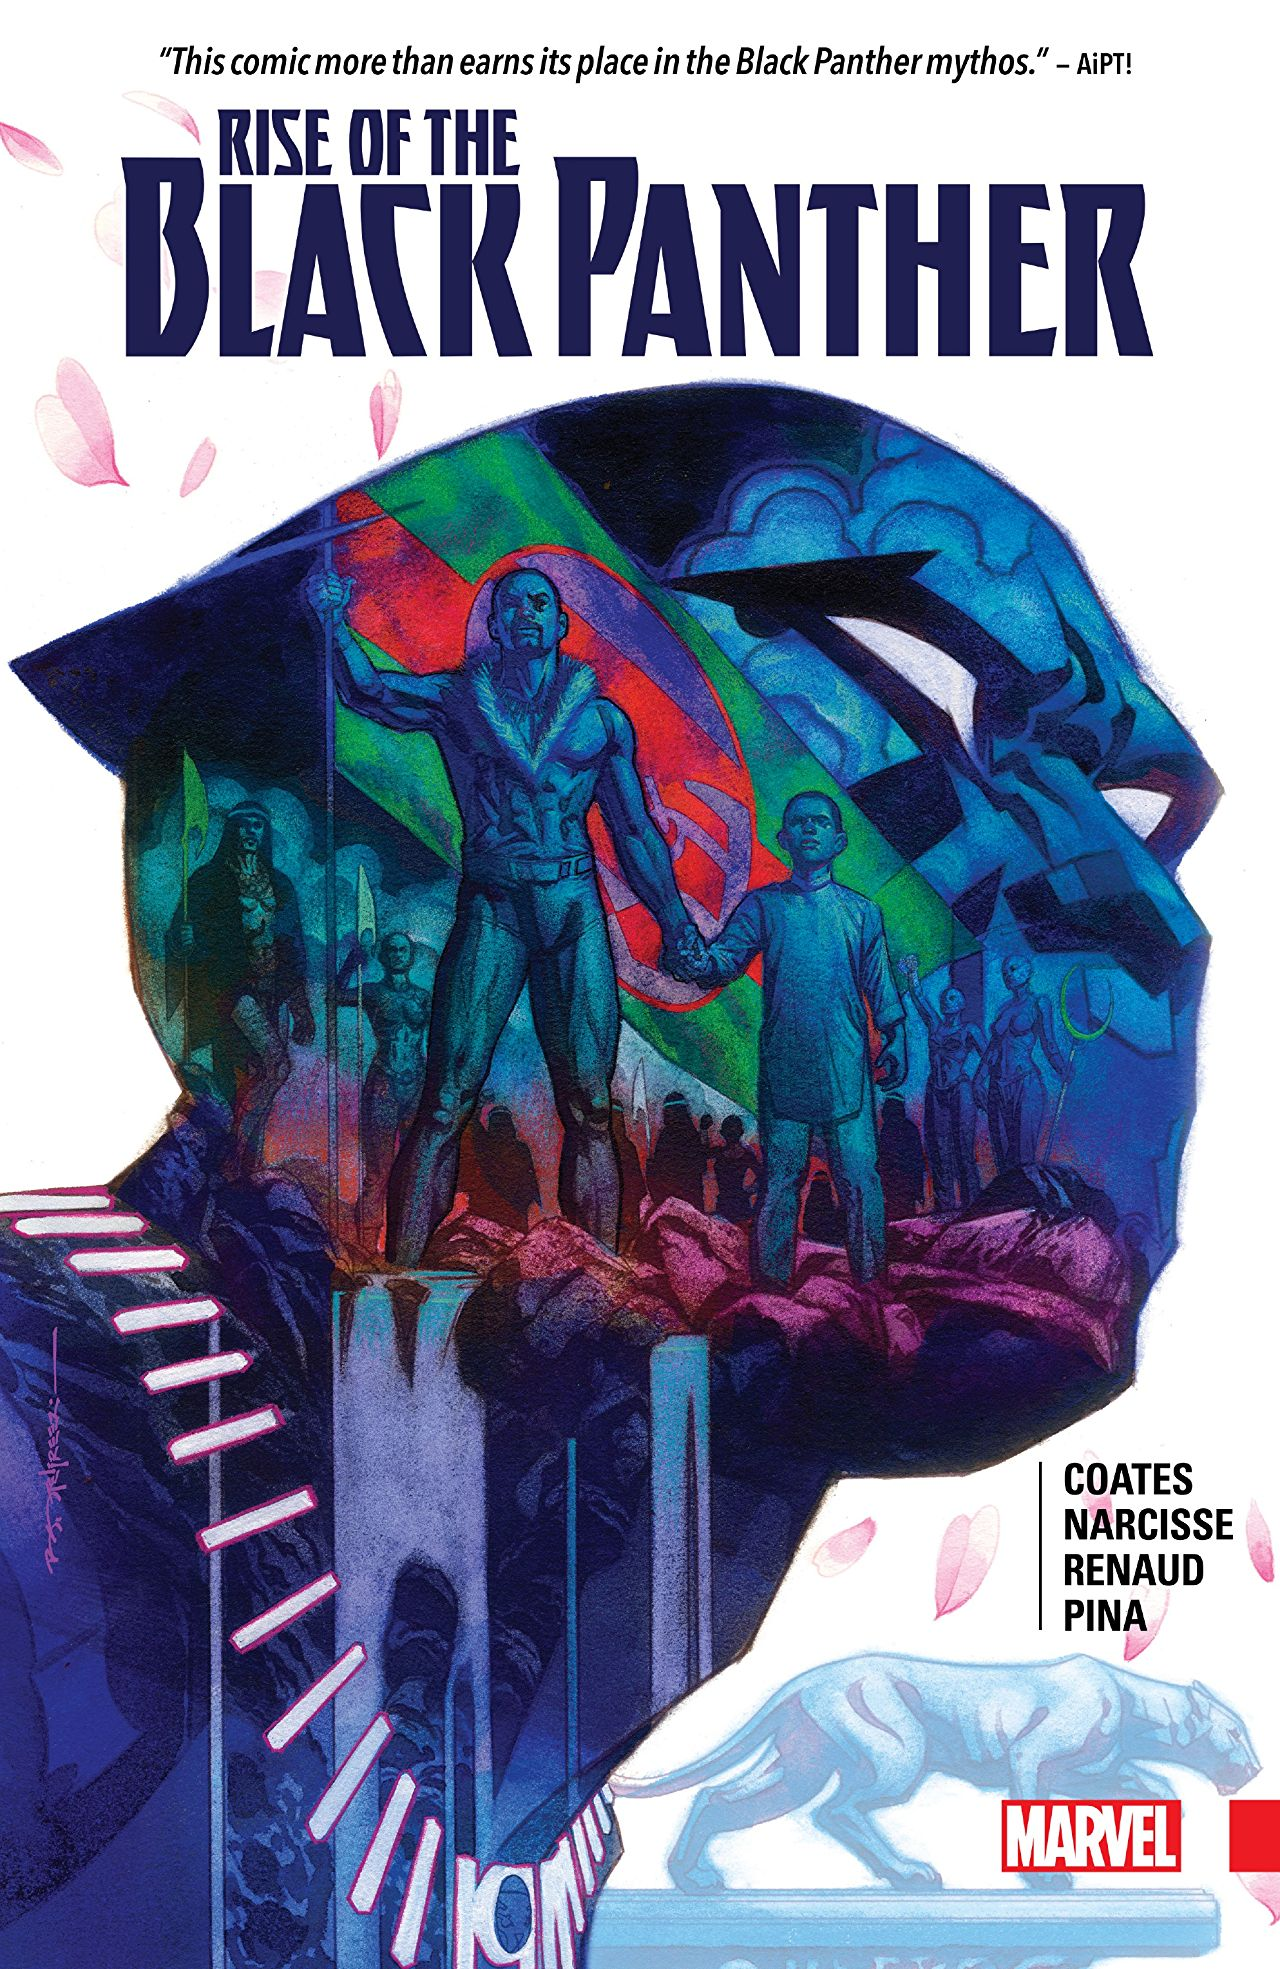 Narcisse and consulting writer Coates do a fantastic job with a fresh take on the Black Panther mythos.